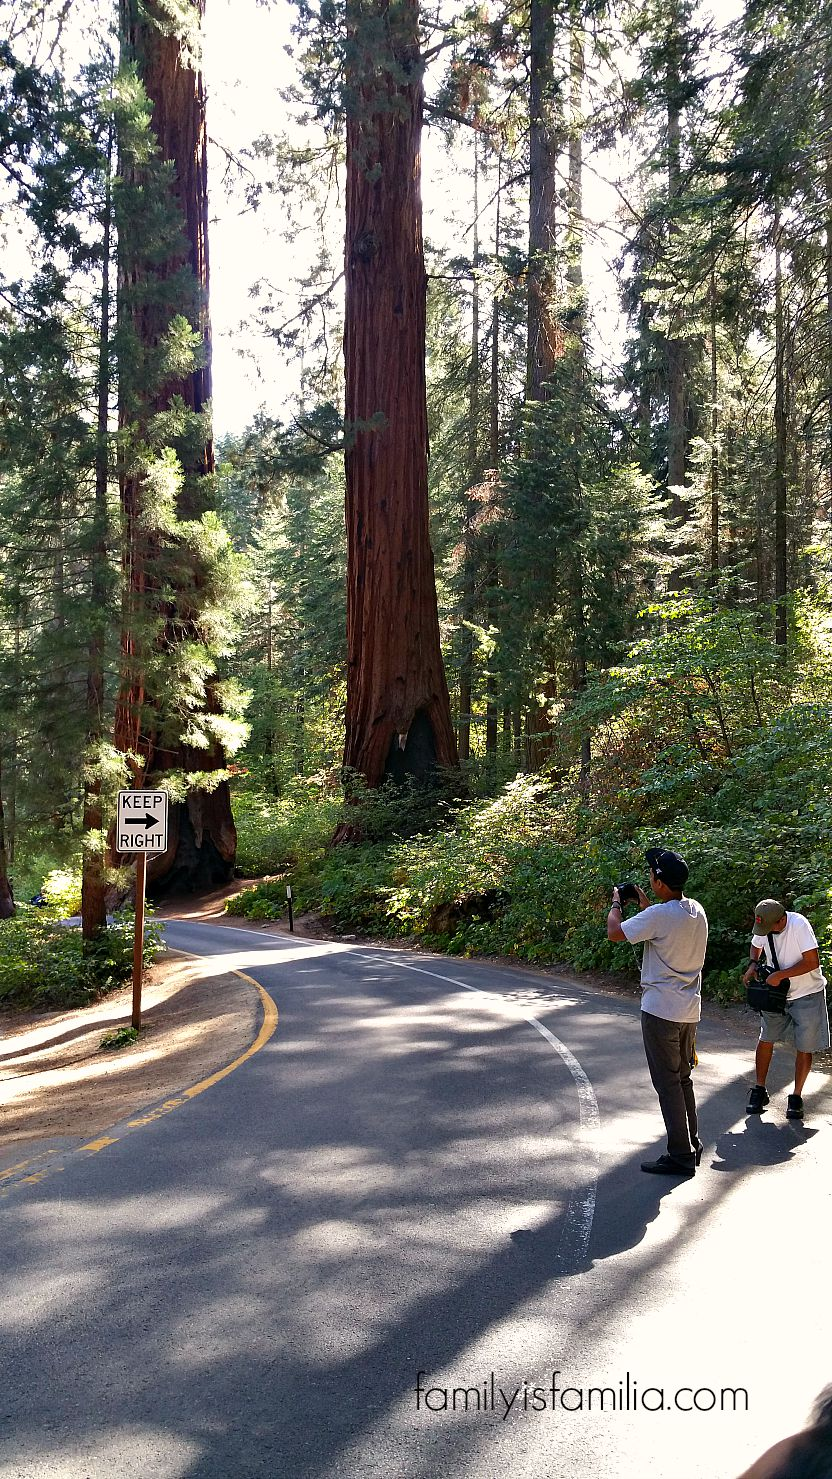 Road Trips are for Making Amazing Family Memories: Sequoia National Park